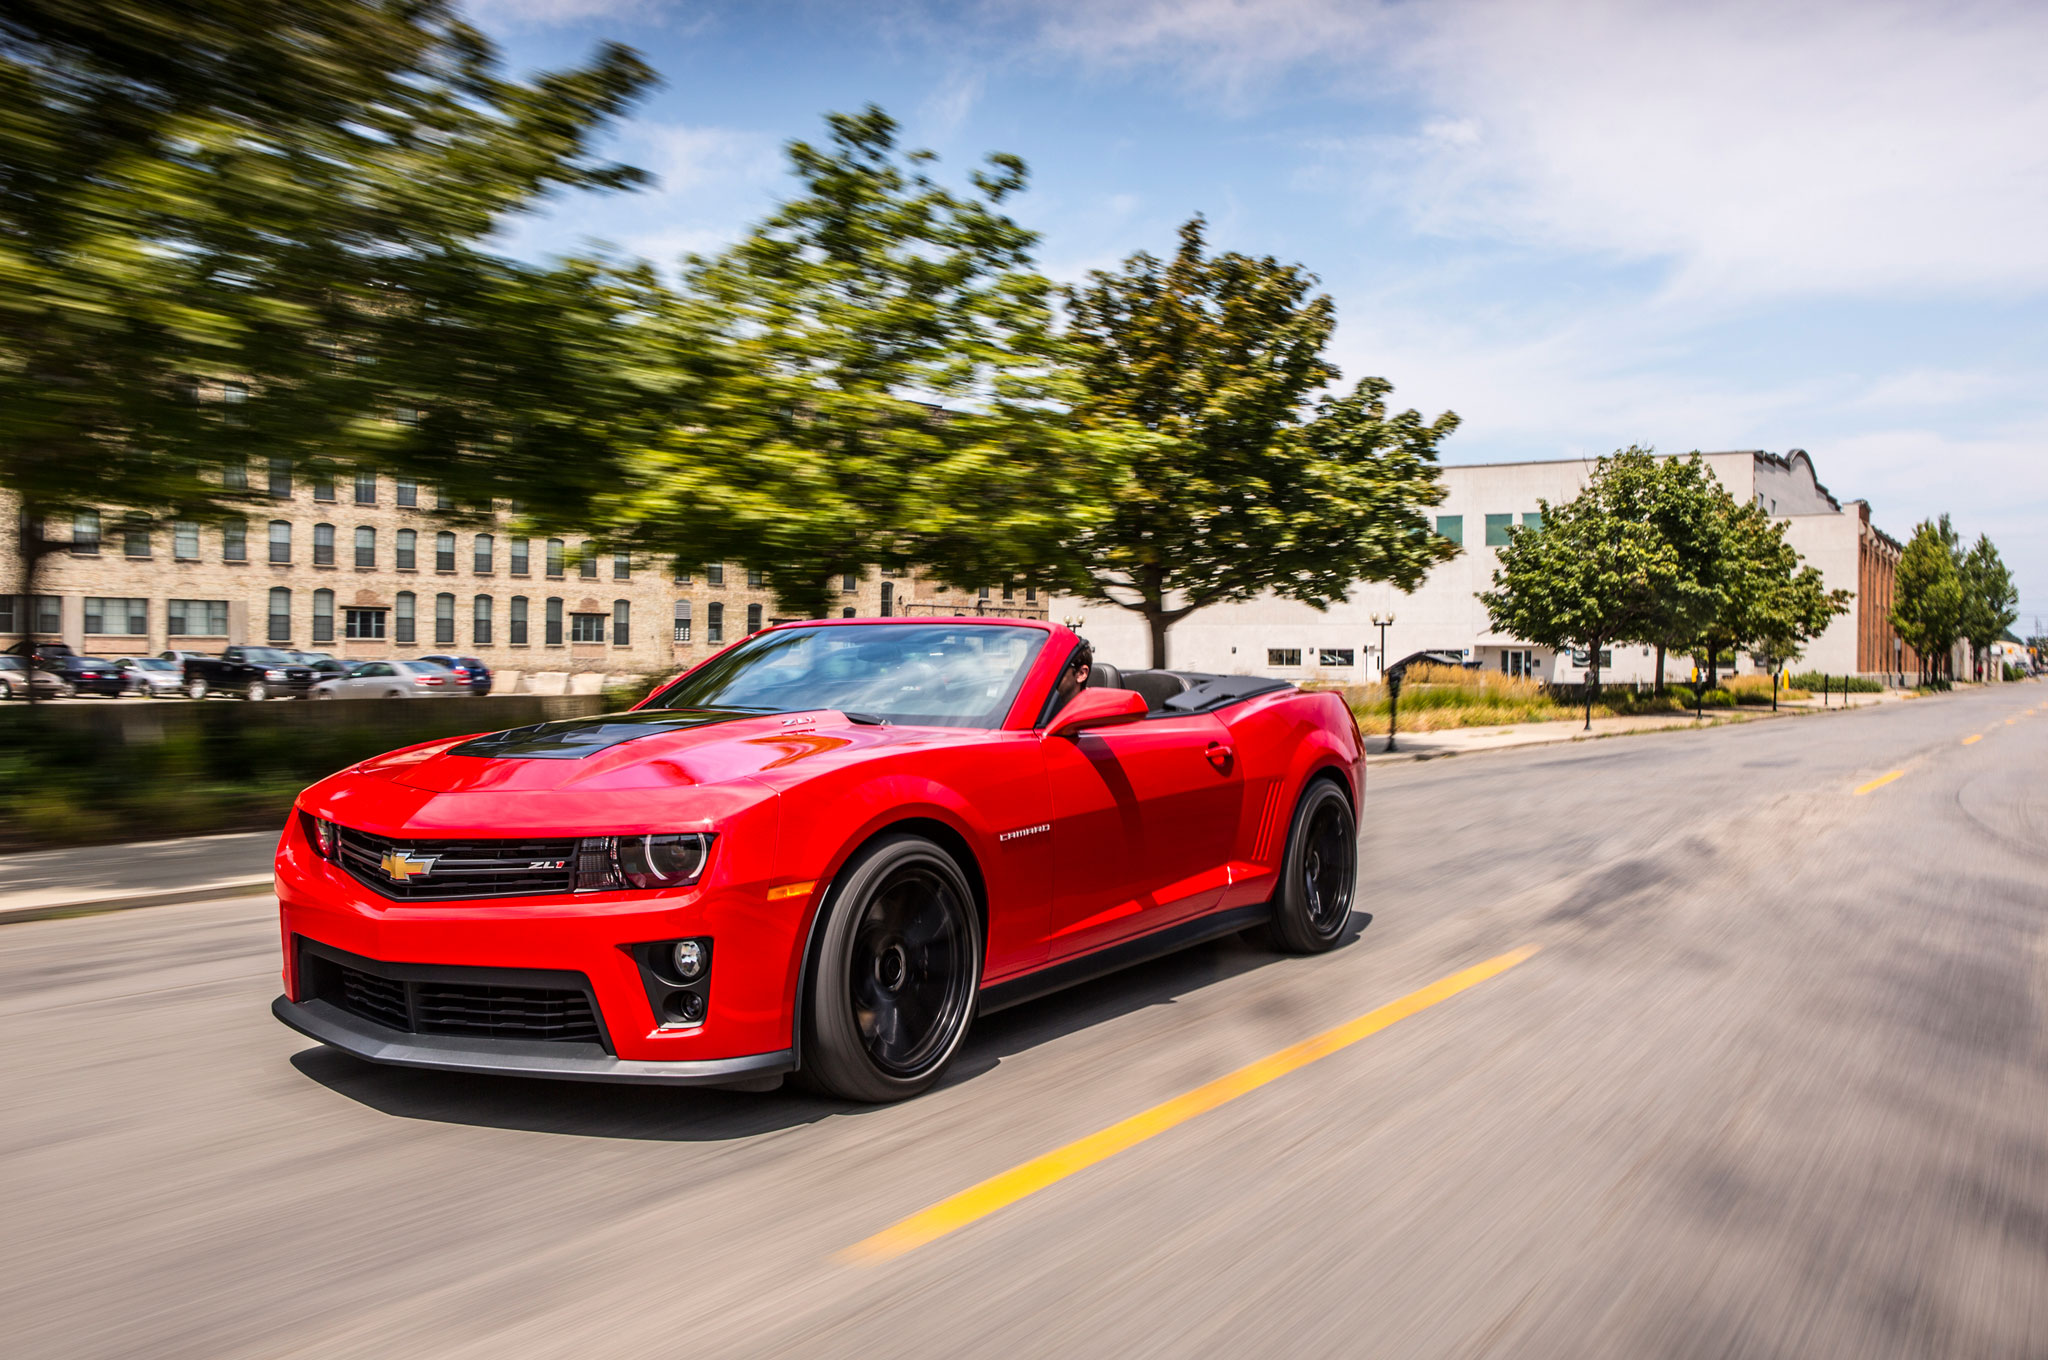 2014 chevrolet camaro zl1 convertible first test - motortrend